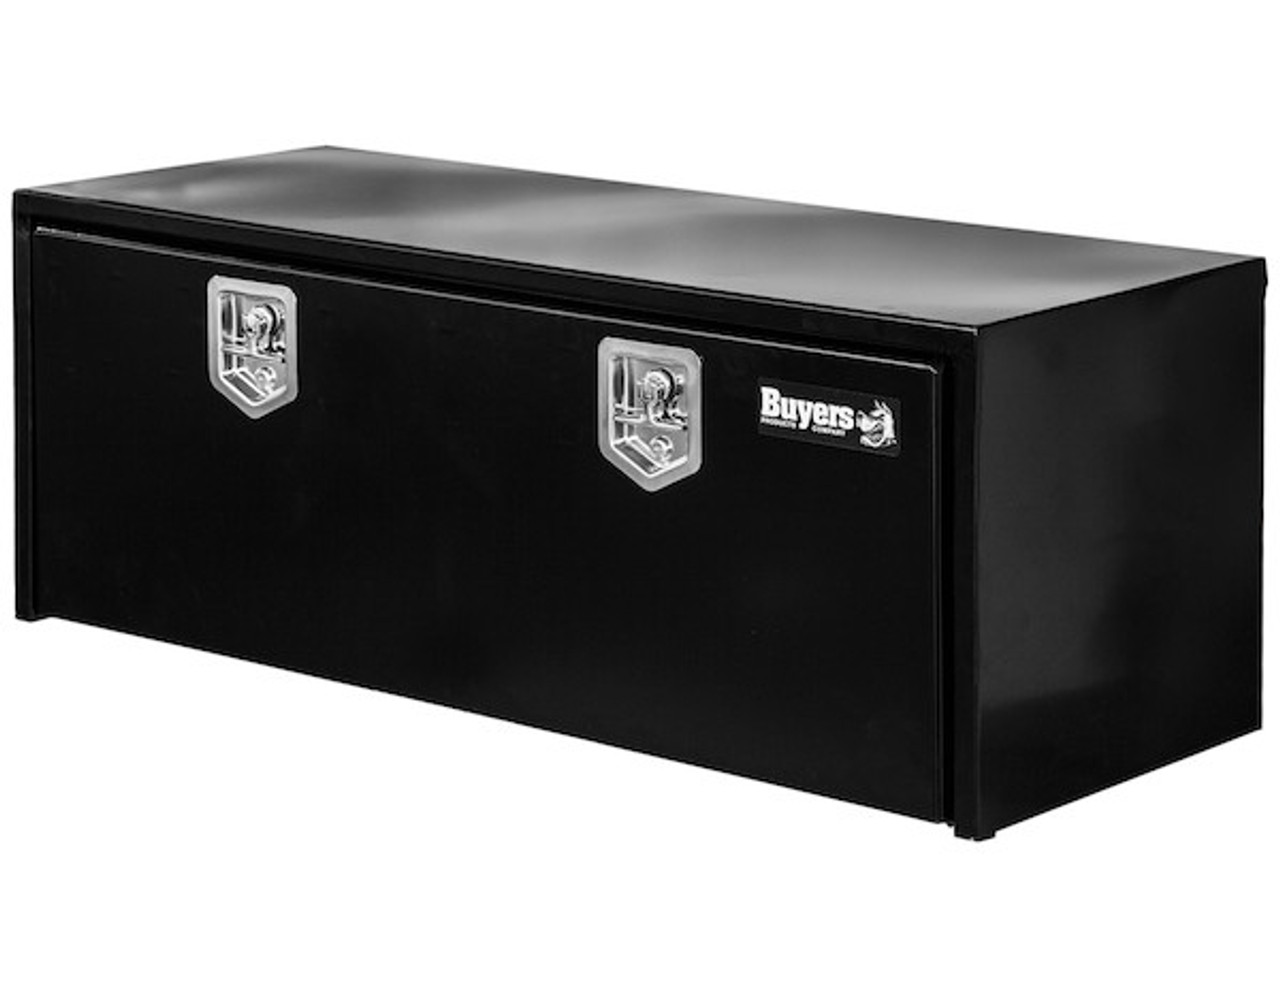 "1702317 BUYERS PRODUCTS BLACK STEEL UNDERBODY TRUCK TOOLBOX WITH T-LATCH 18""HX18""DX66""W"